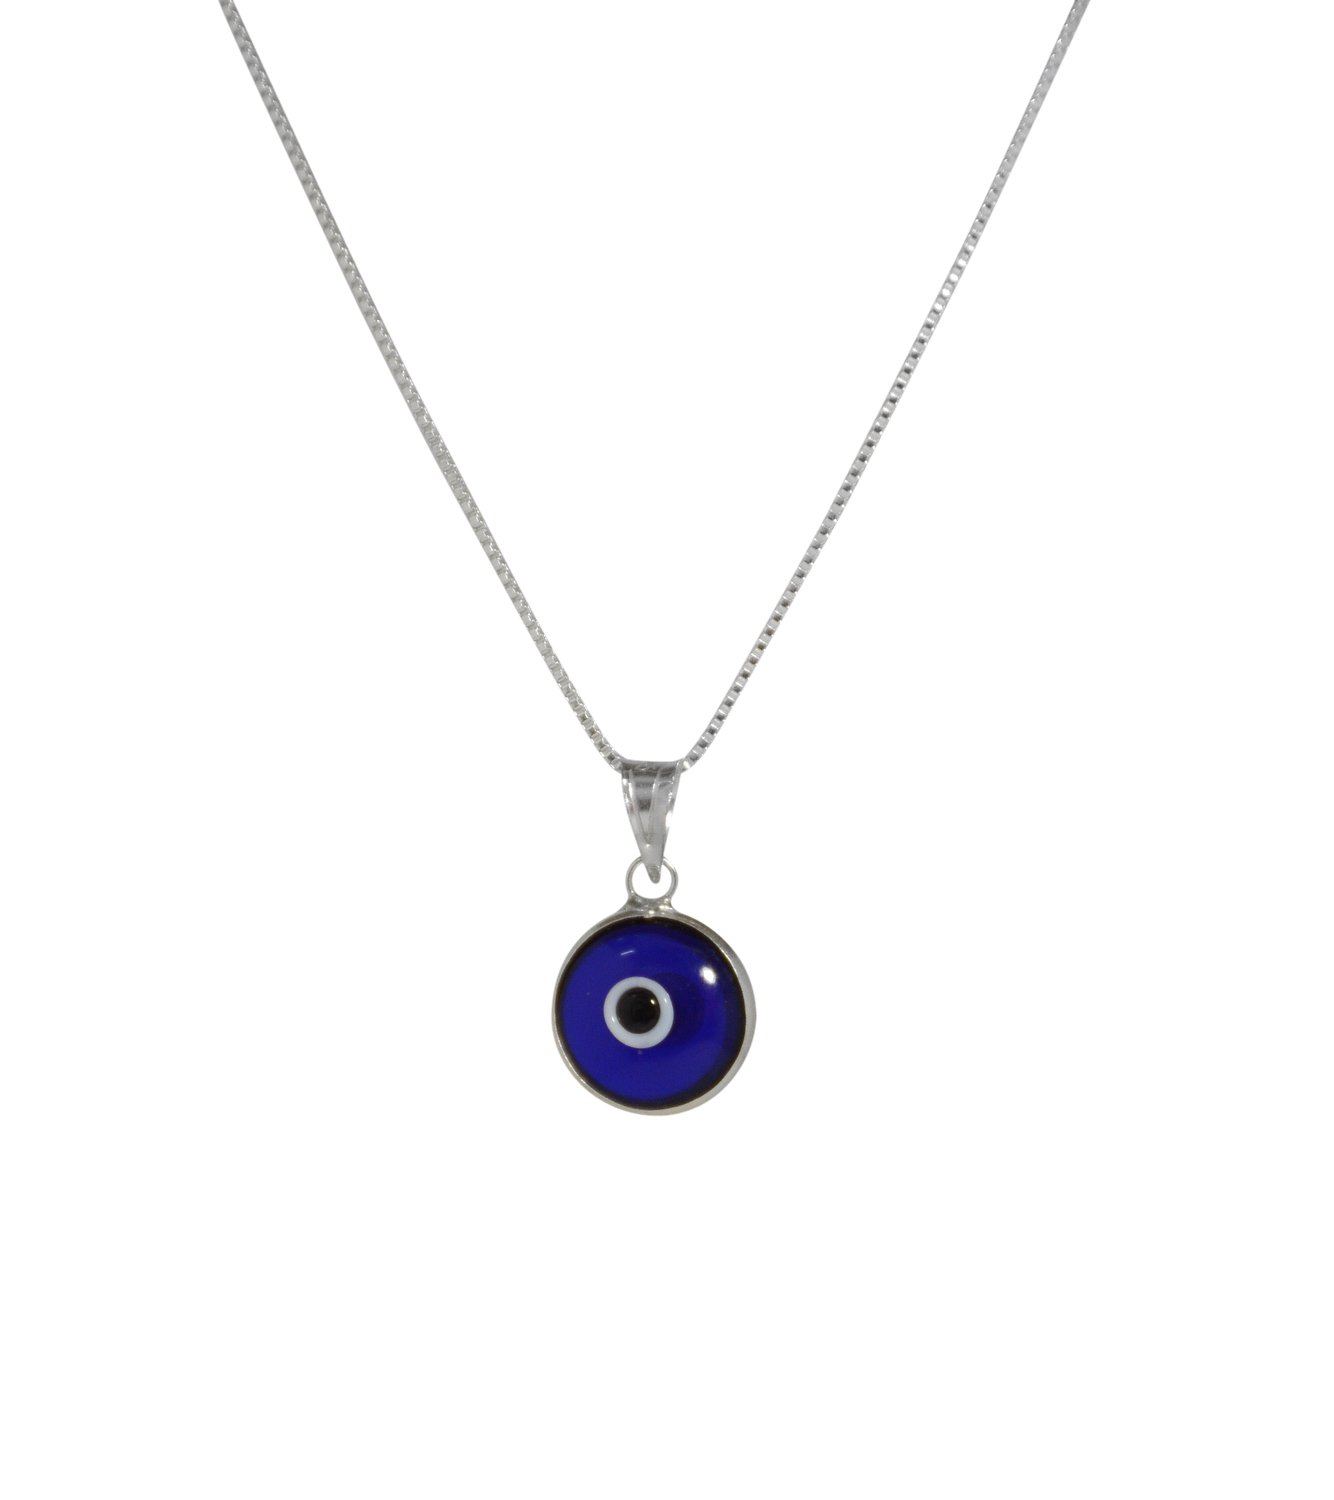 MIZZE Made for Luck Silver Evil Eye Necklace with BLUE Glass Evil Eye Charm - 925 Sterling Silver 19 Inch Box Chain